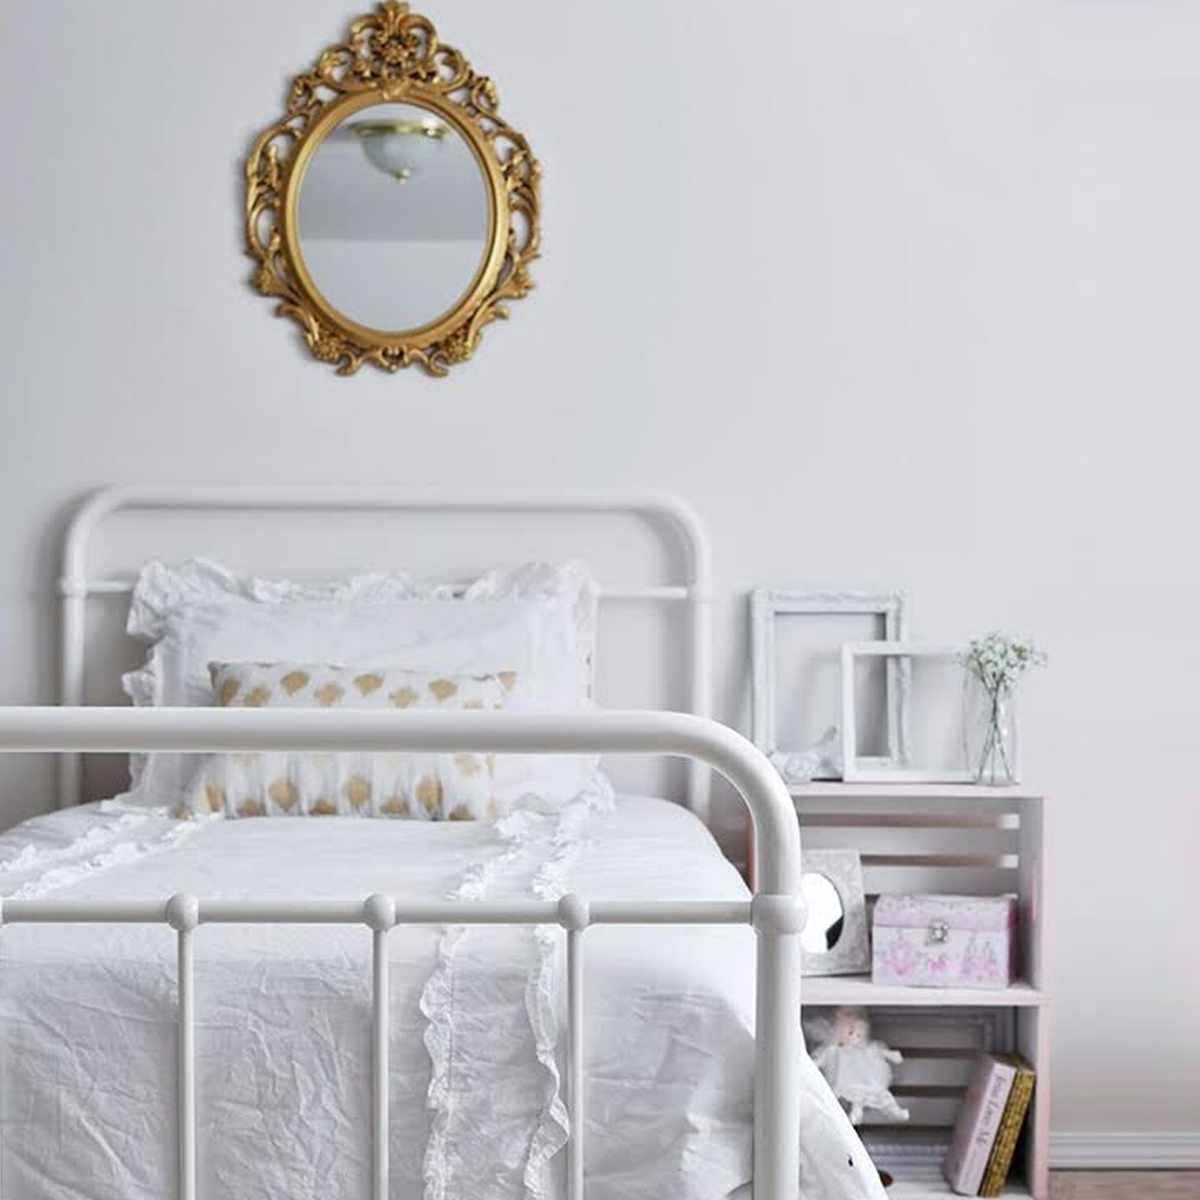 Neutral bedroom with white metal bed frame photo